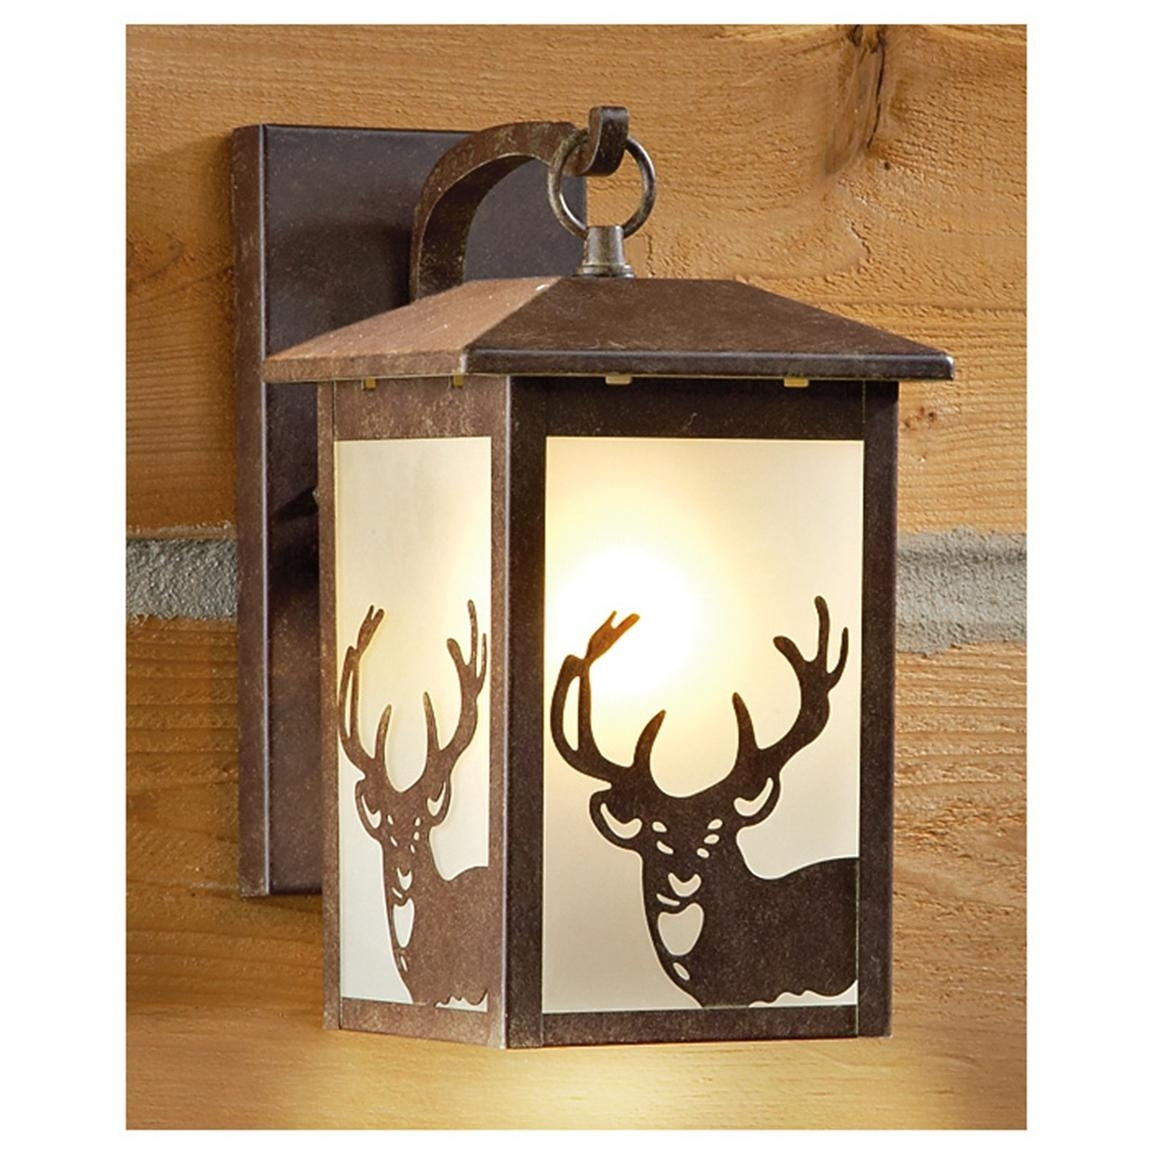 Rustic Outdoor Hanging Lamps Table Landscape Lighting Wall Mounted In Outdoor Lanterns For Tables (View 18 of 20)